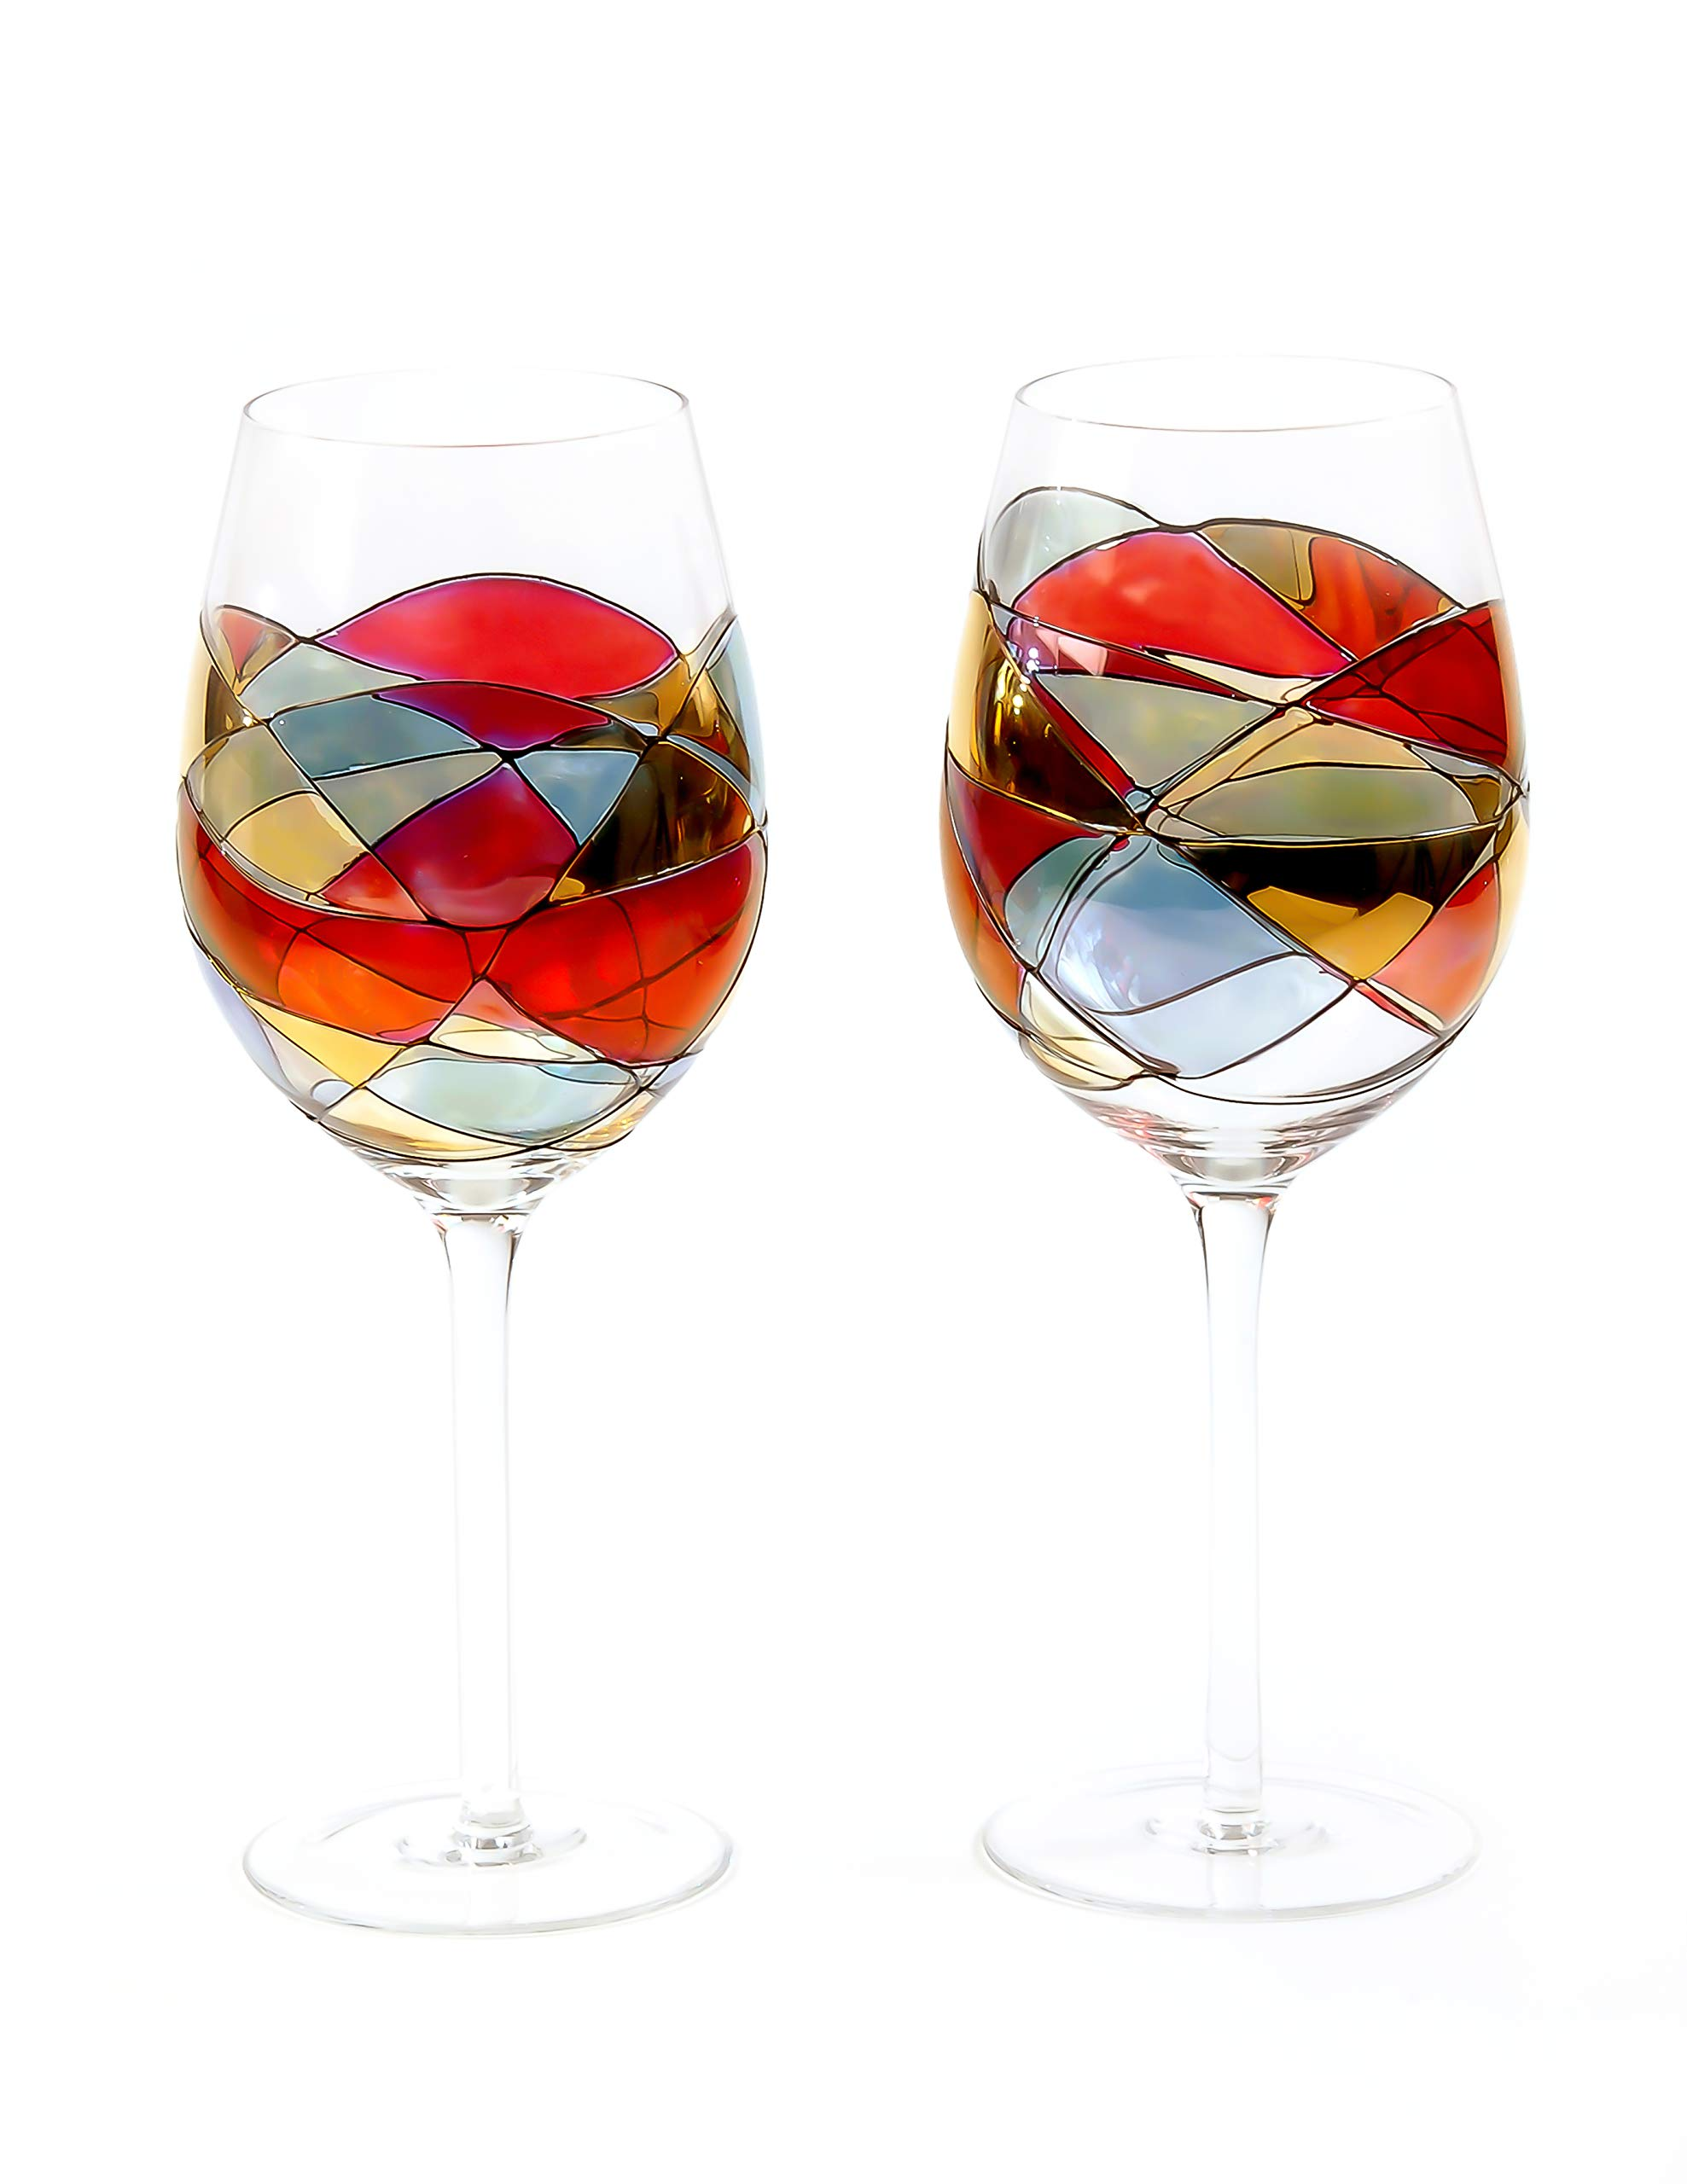 ANTONI BARCELONA Large Wine Glasses 29Oz Sagrada Red Set 2 Stained Hand Painted & Mouth Blown Red White Wine Special Gifts Birthday Anniversary Weddings Women Men Mother, Father Stunning Colorful